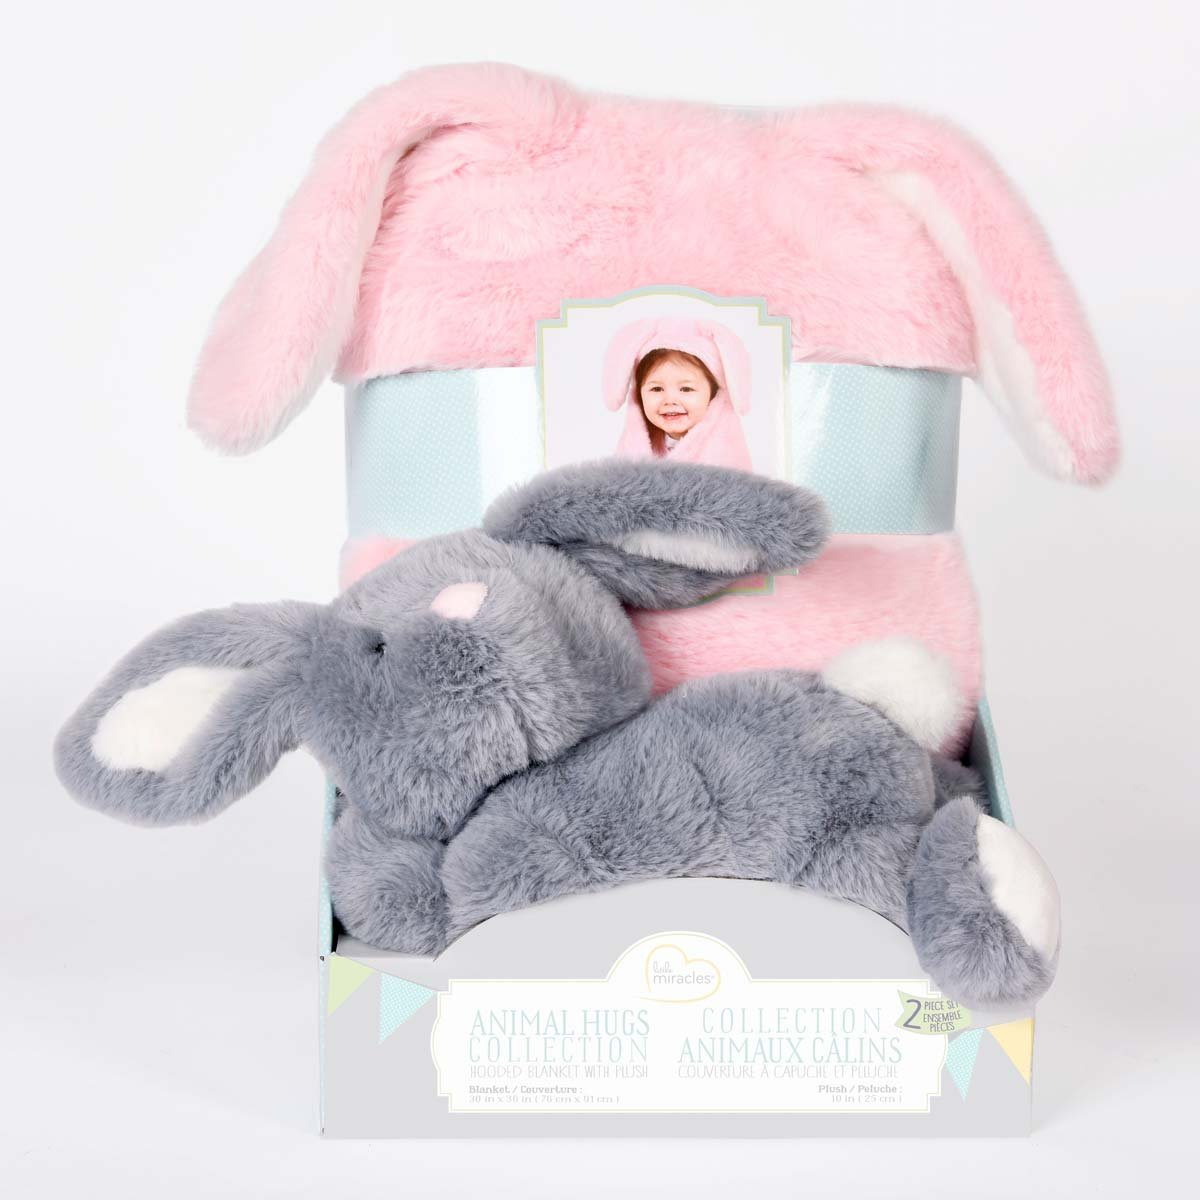 Animal Hugs Collection Hooded Blanket with Plush Bunny by Little Miracles (Image #1)